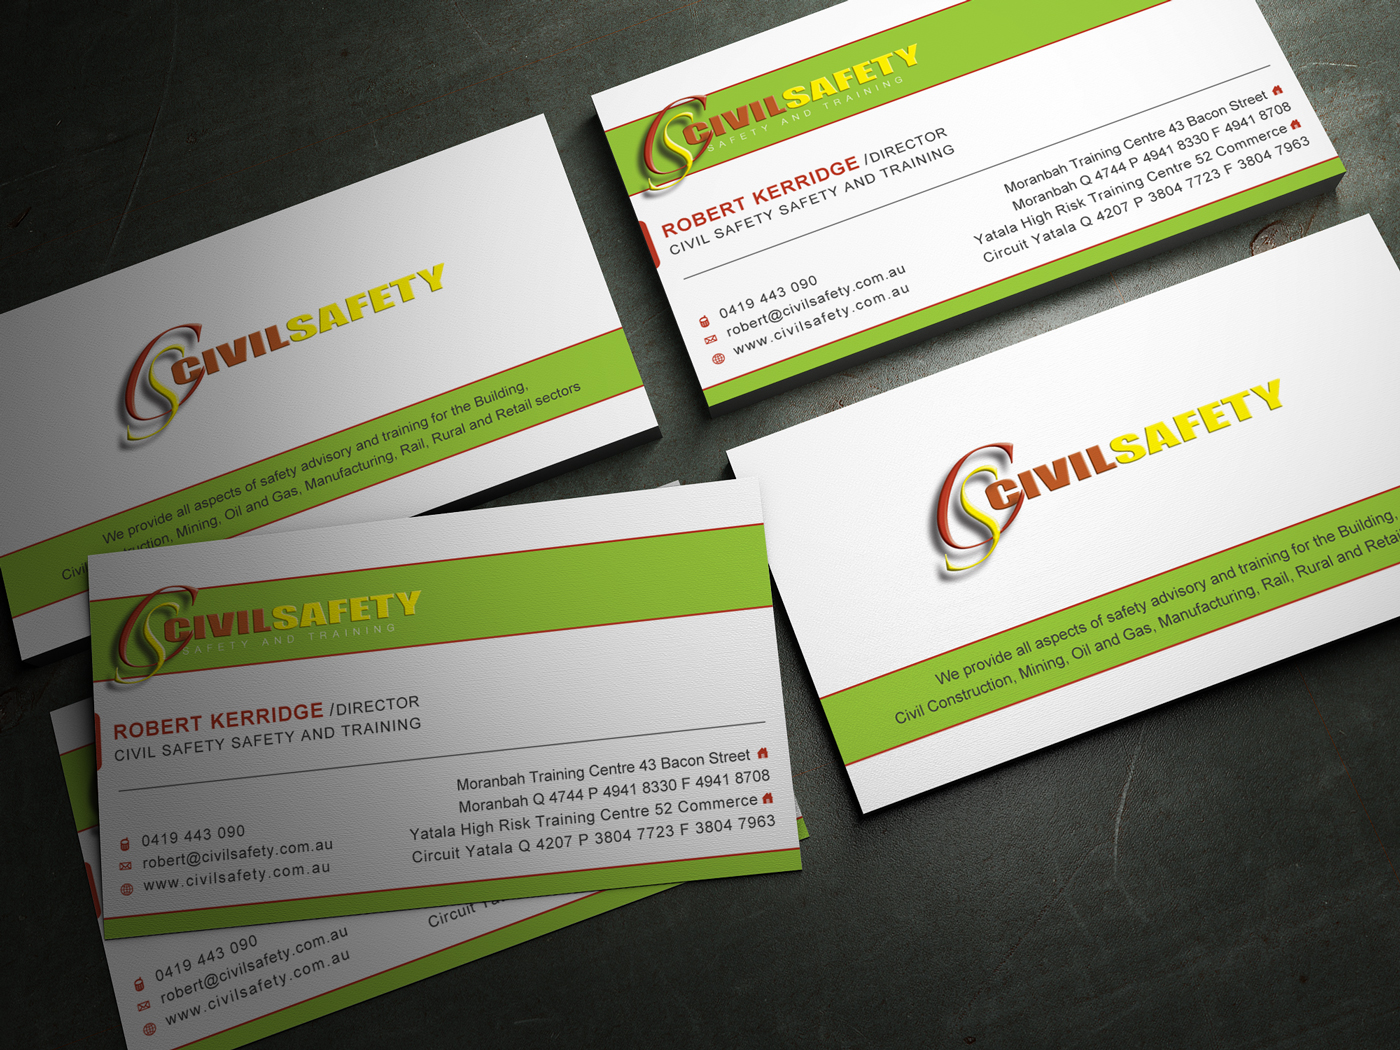 Professional bold training business card design for civil safety business card design by milimi for civil safety pty ltd design 2779635 reheart